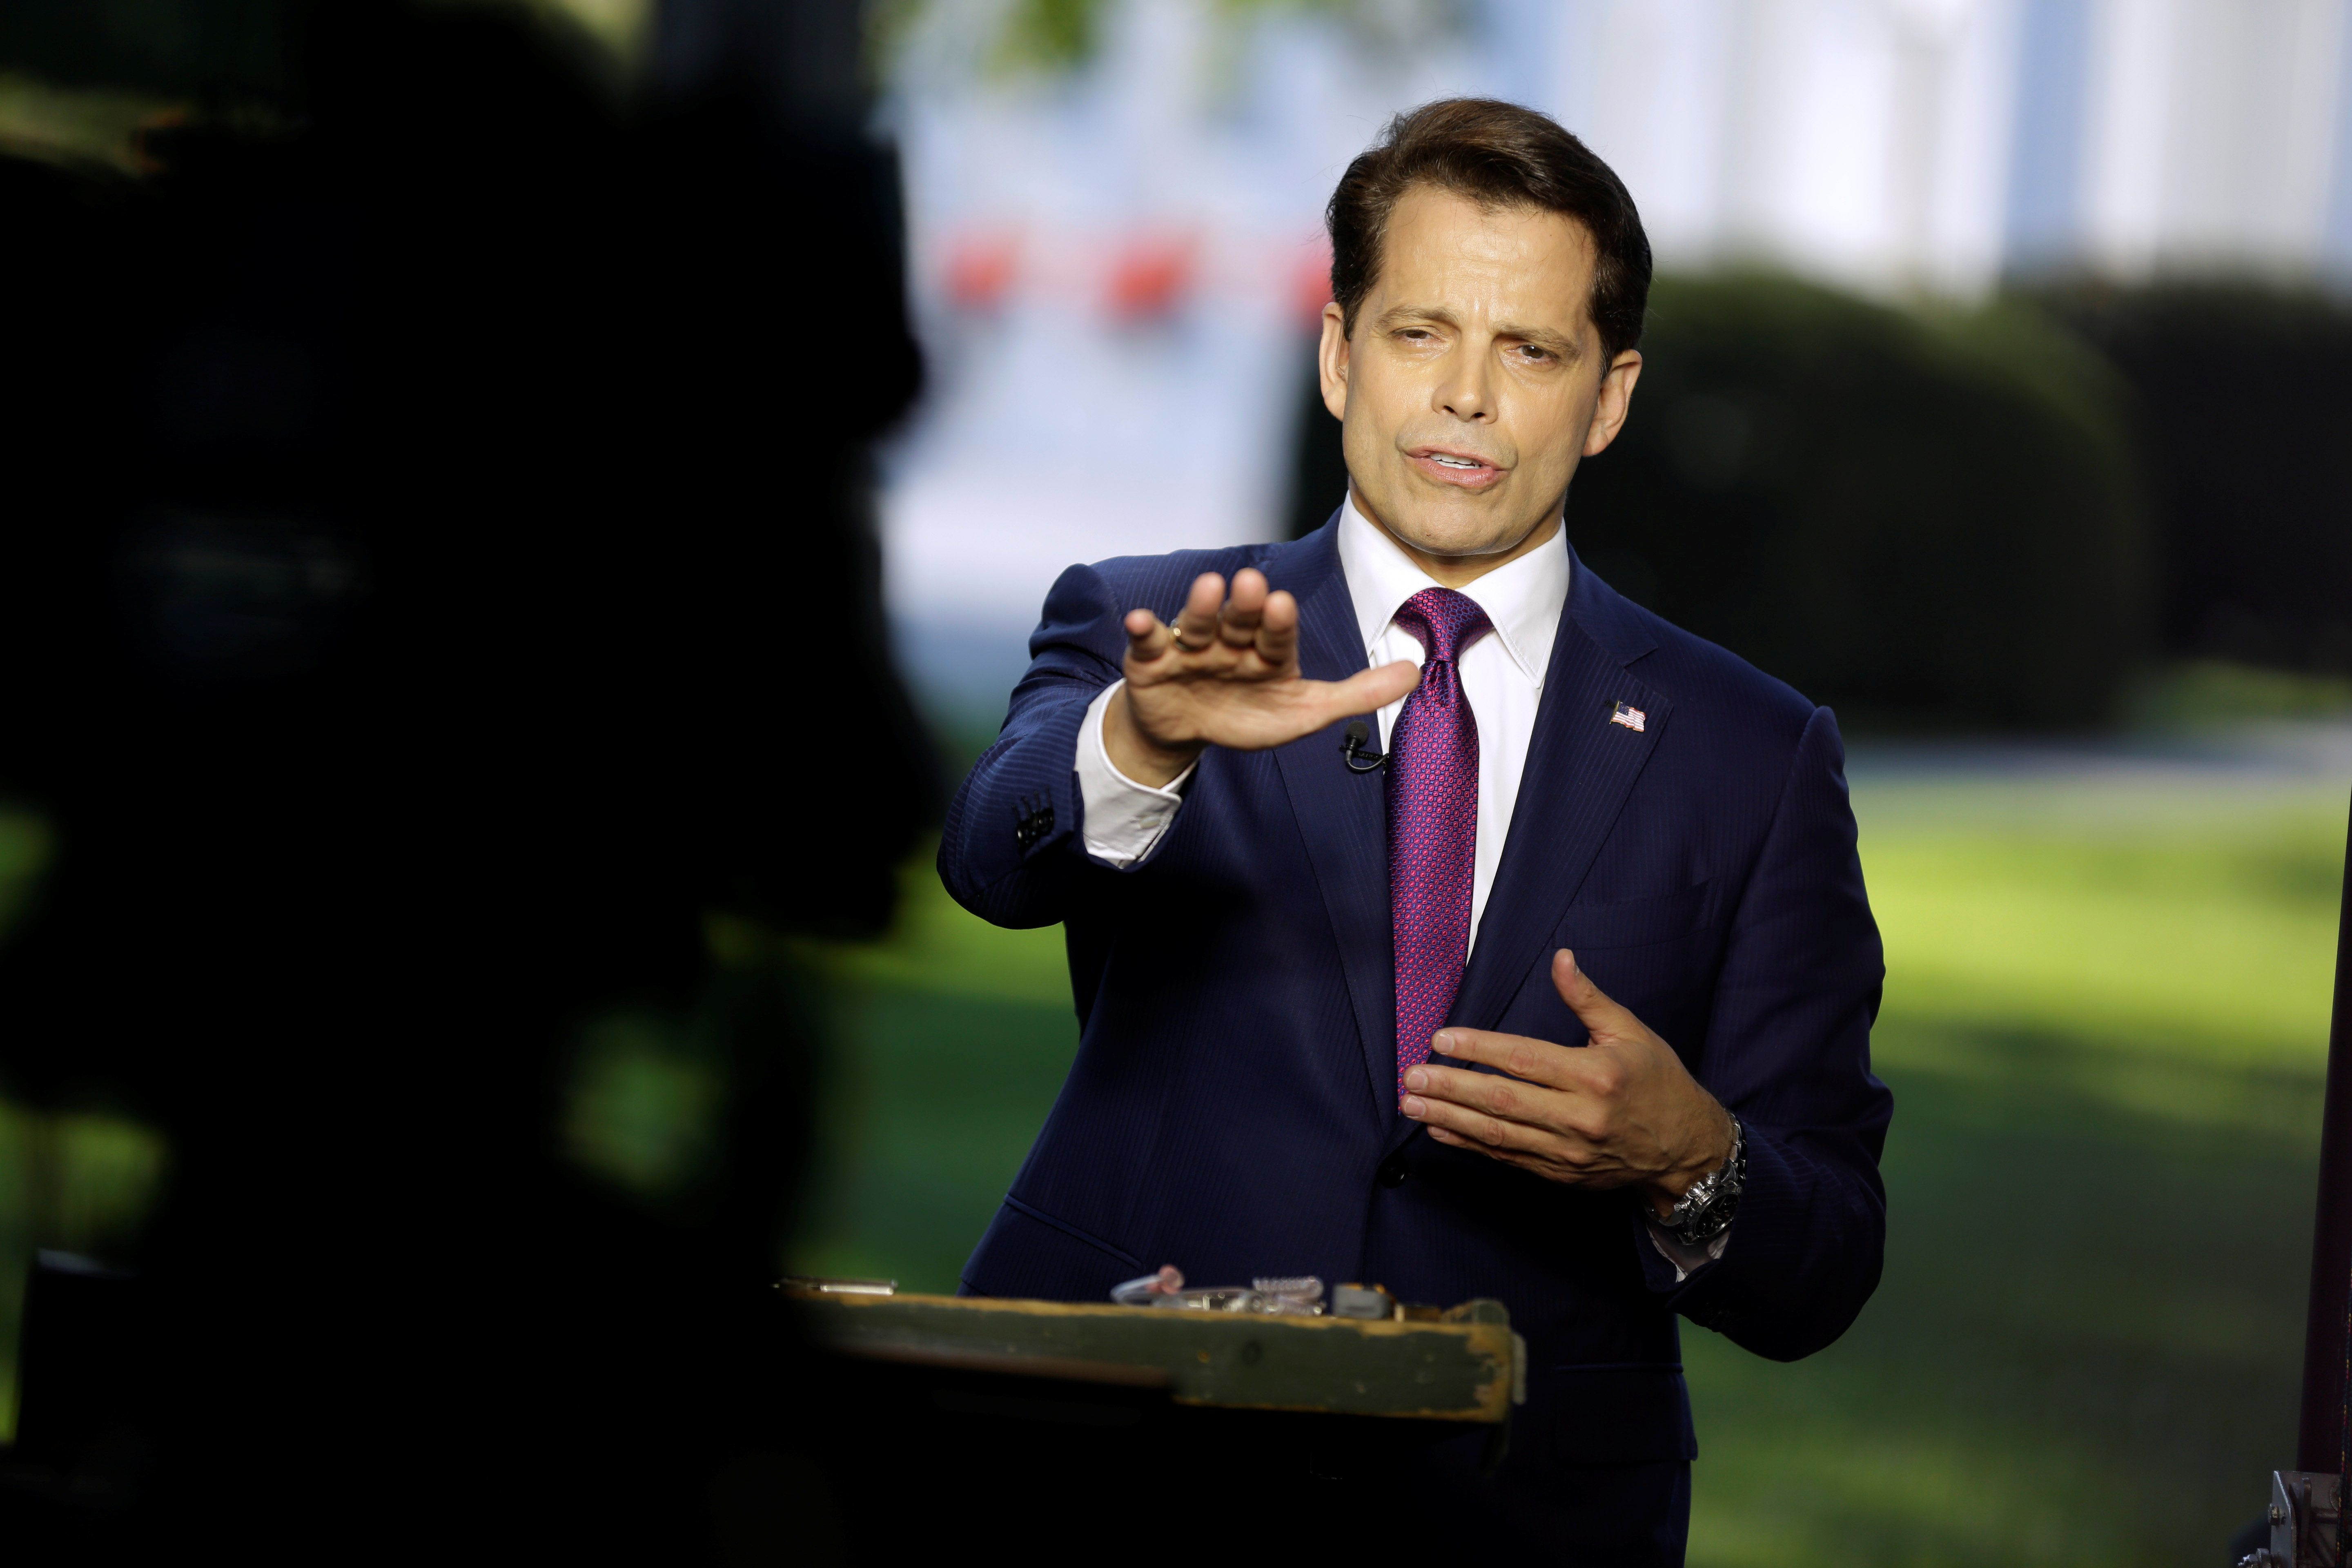 The Scaramucci Post Tweeted The Most Outrageous Poll About The Holocaust